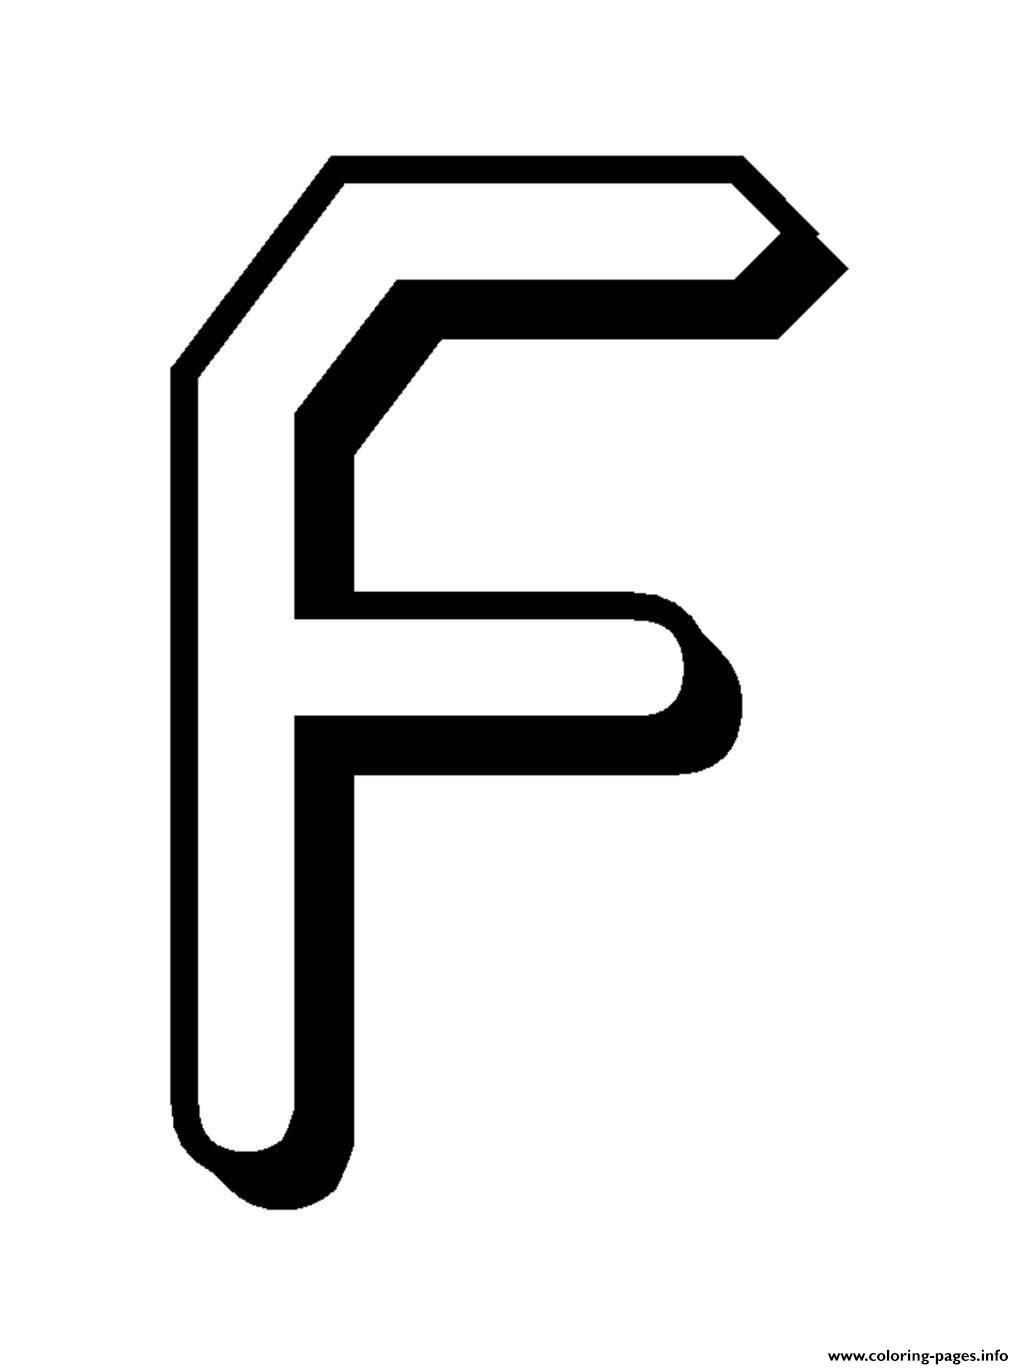 Alphabet S Free Letter F For Kids8a0b Coloring Pages Printable